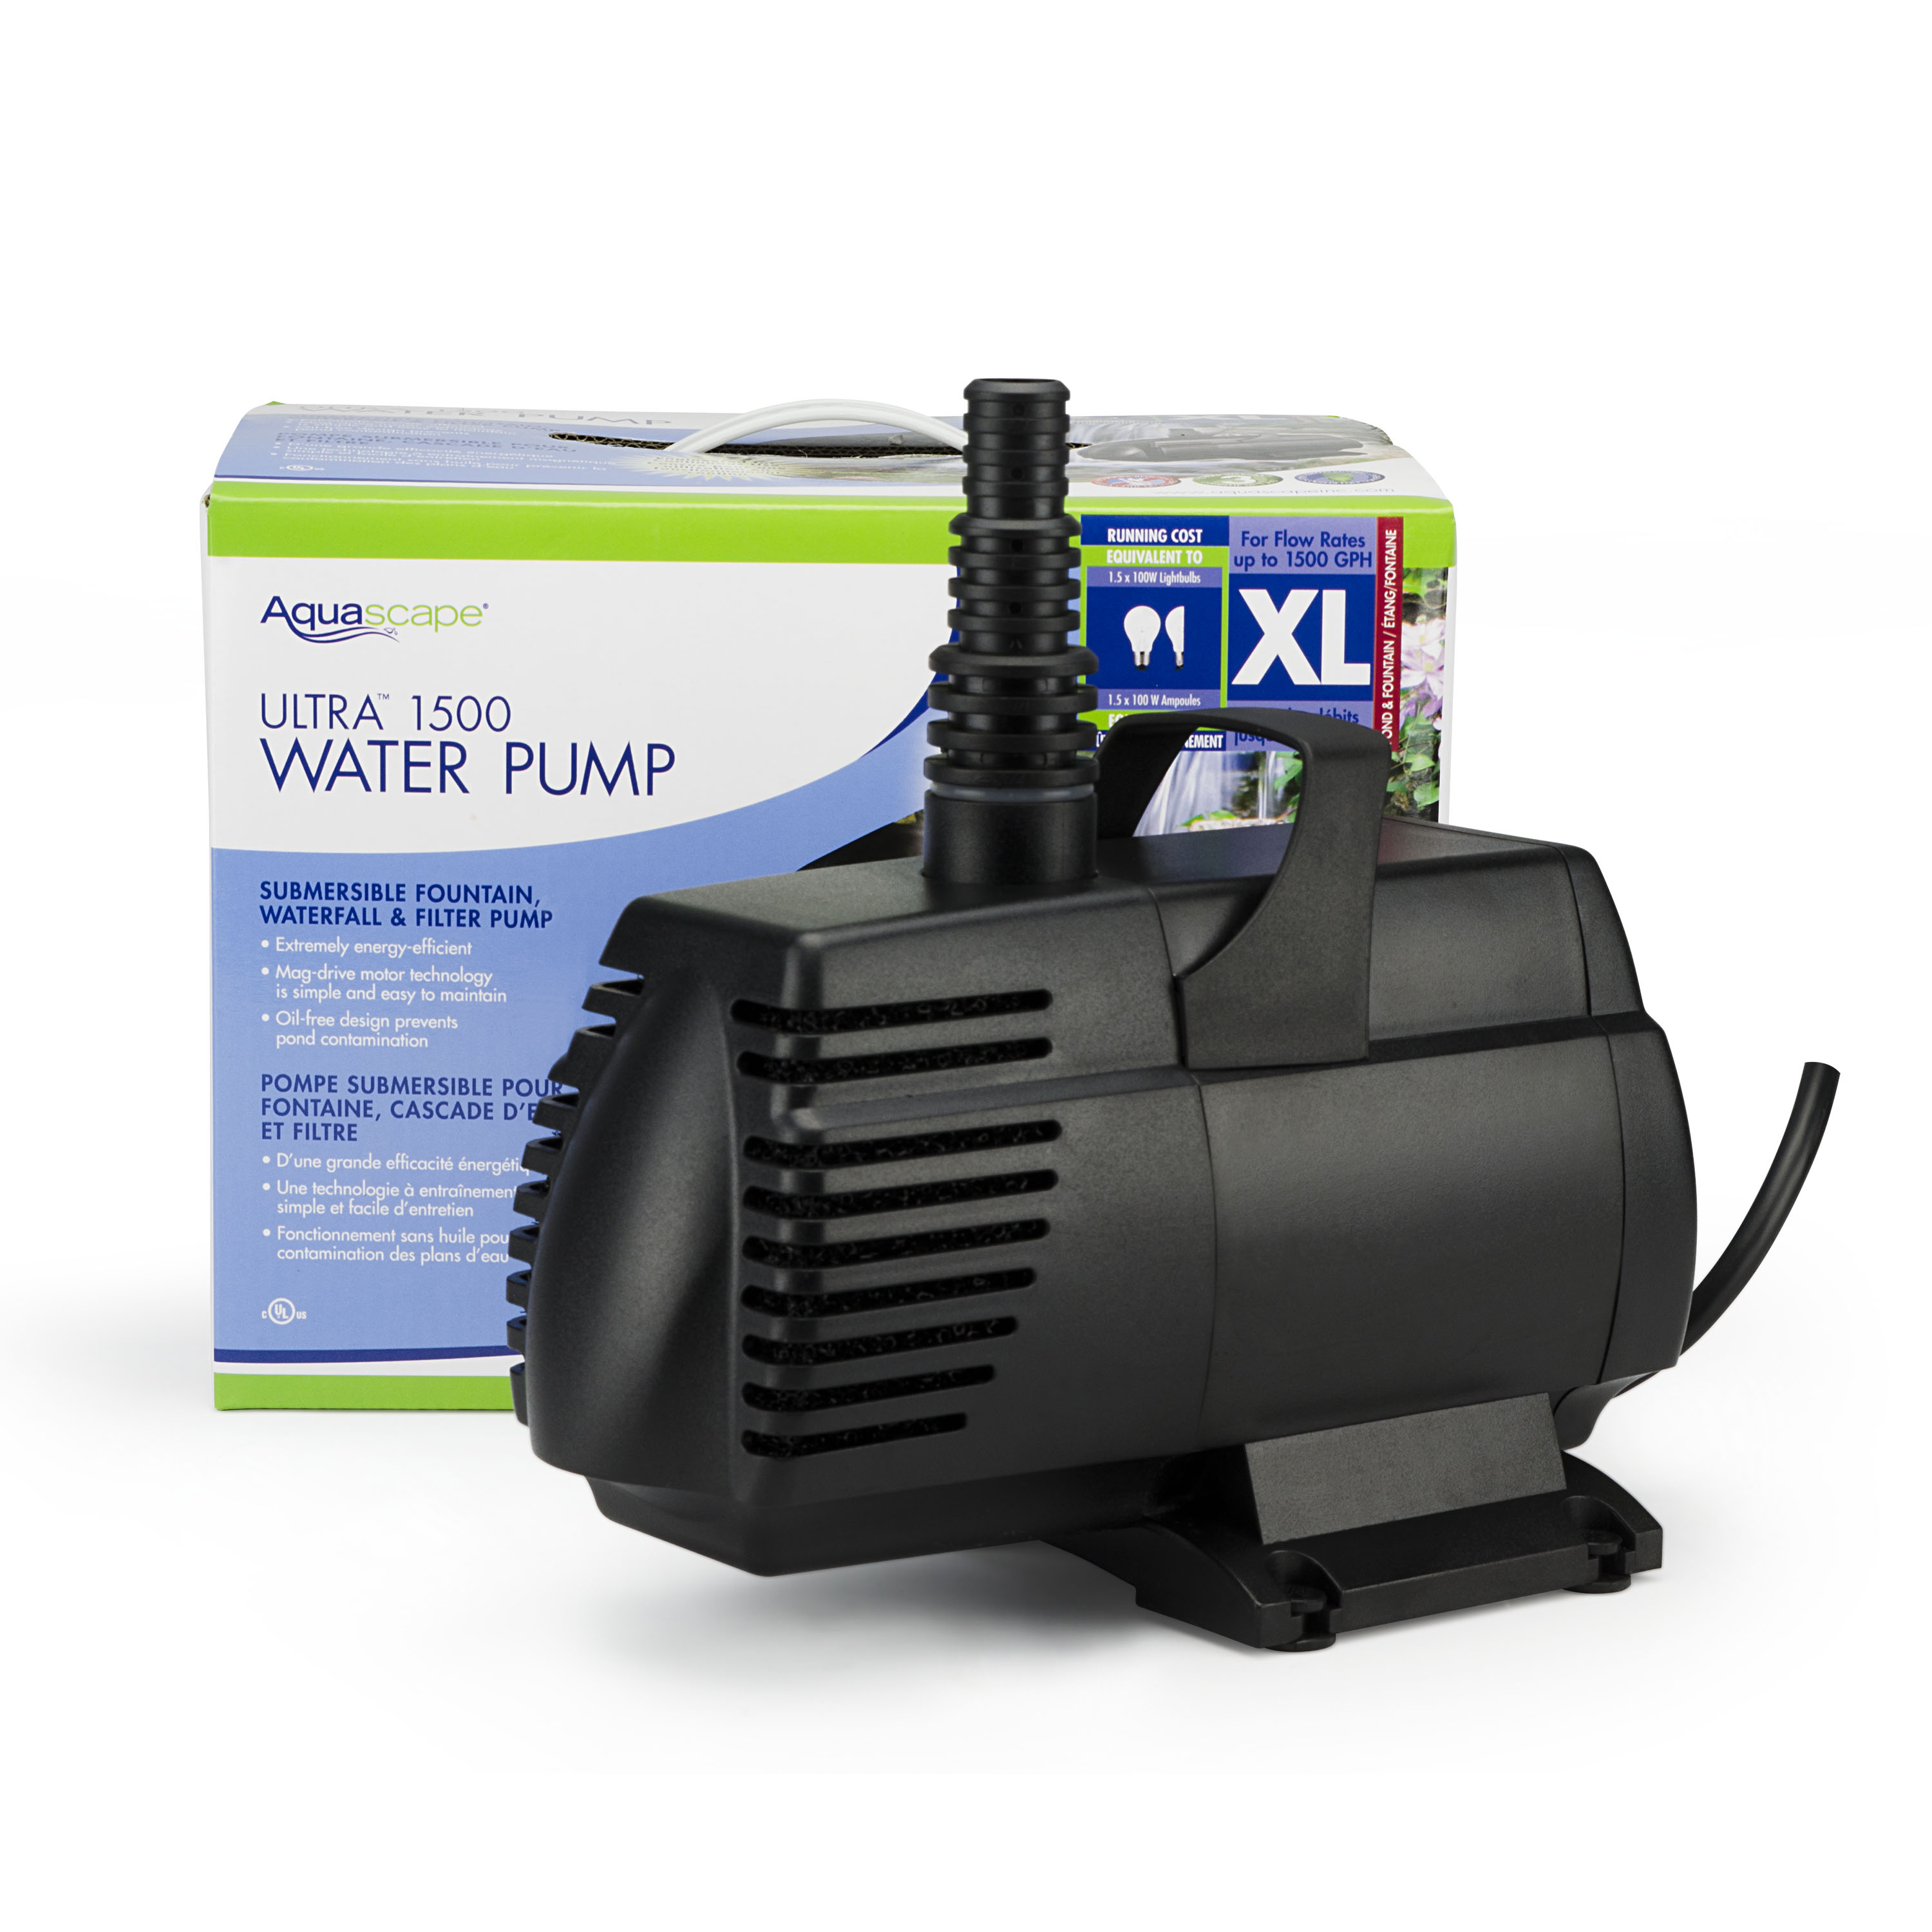 Ultra 1500 Water Pump